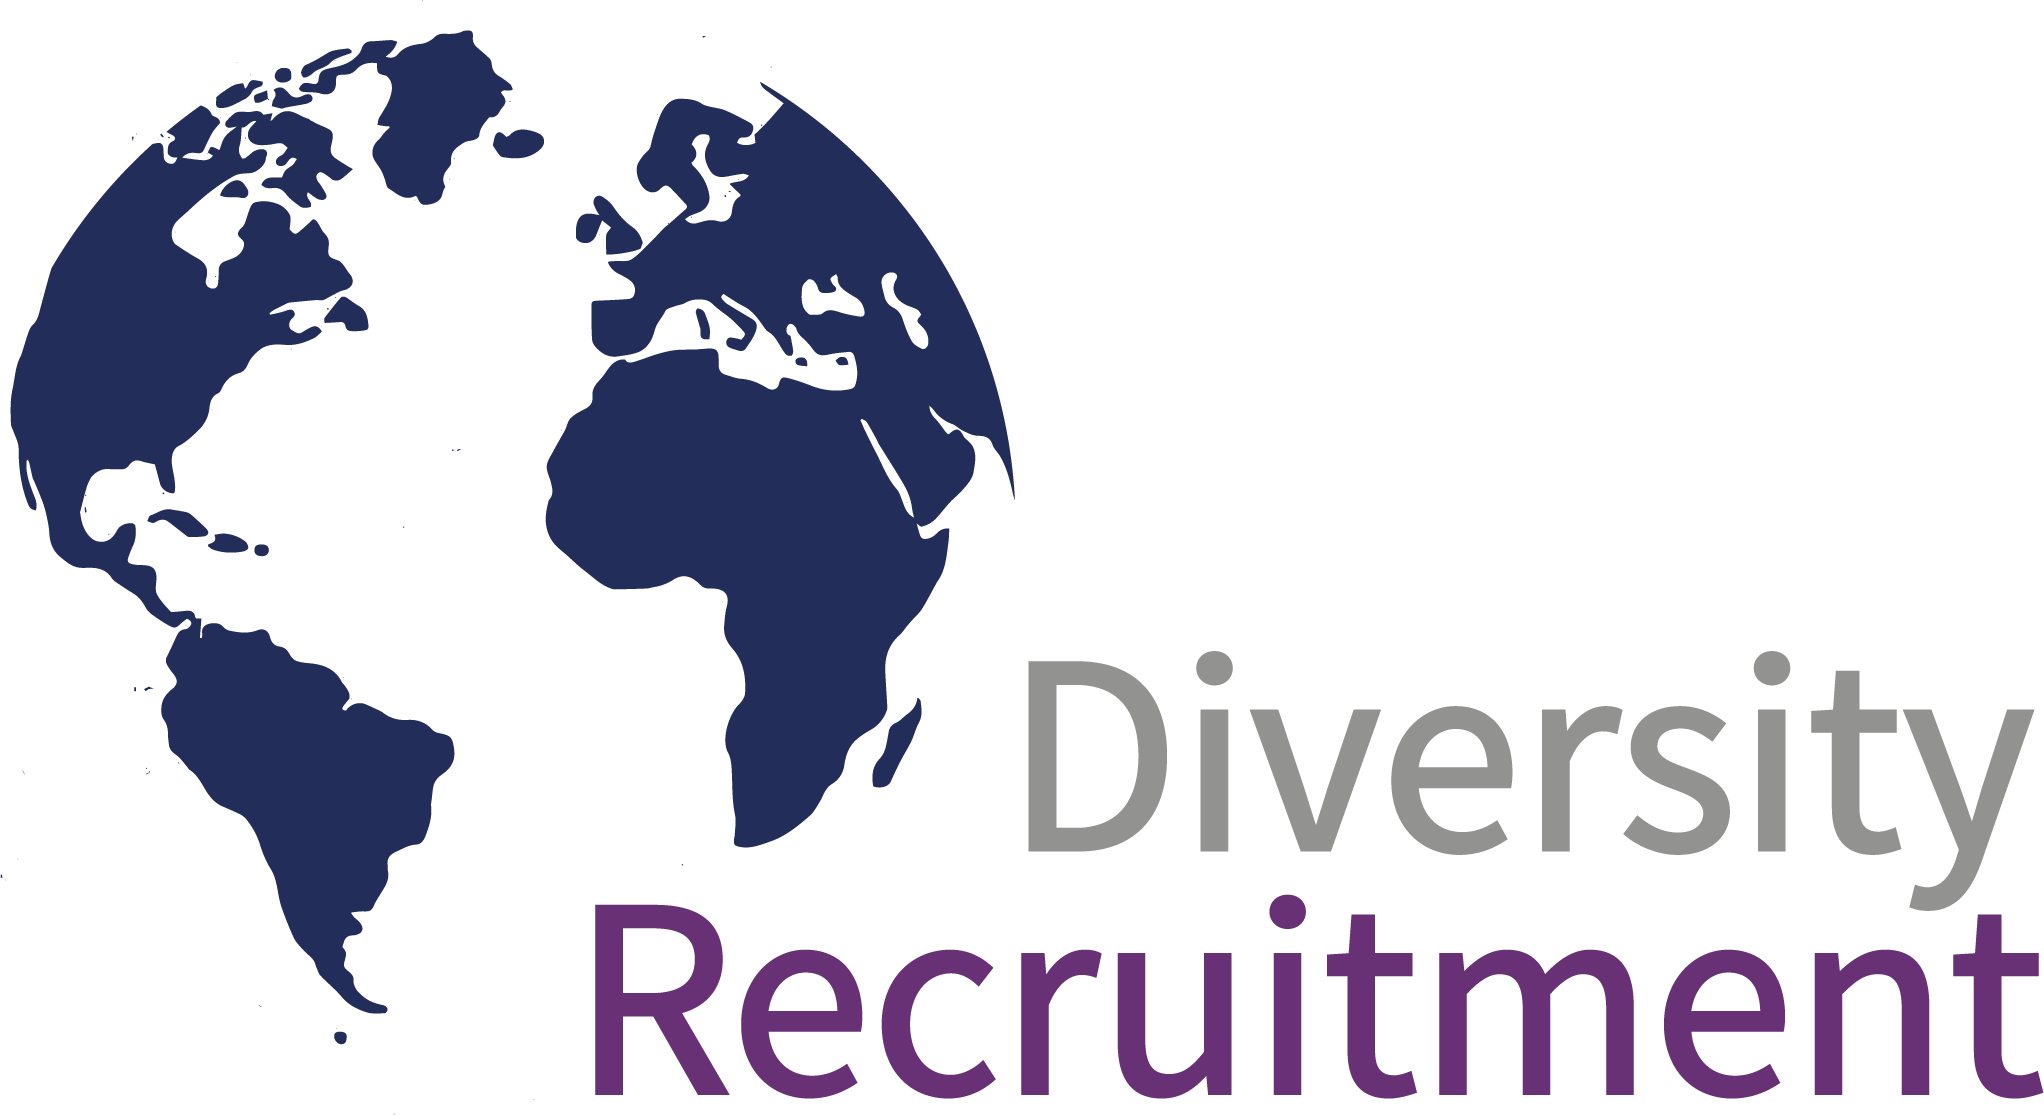 Diversity Recruitment